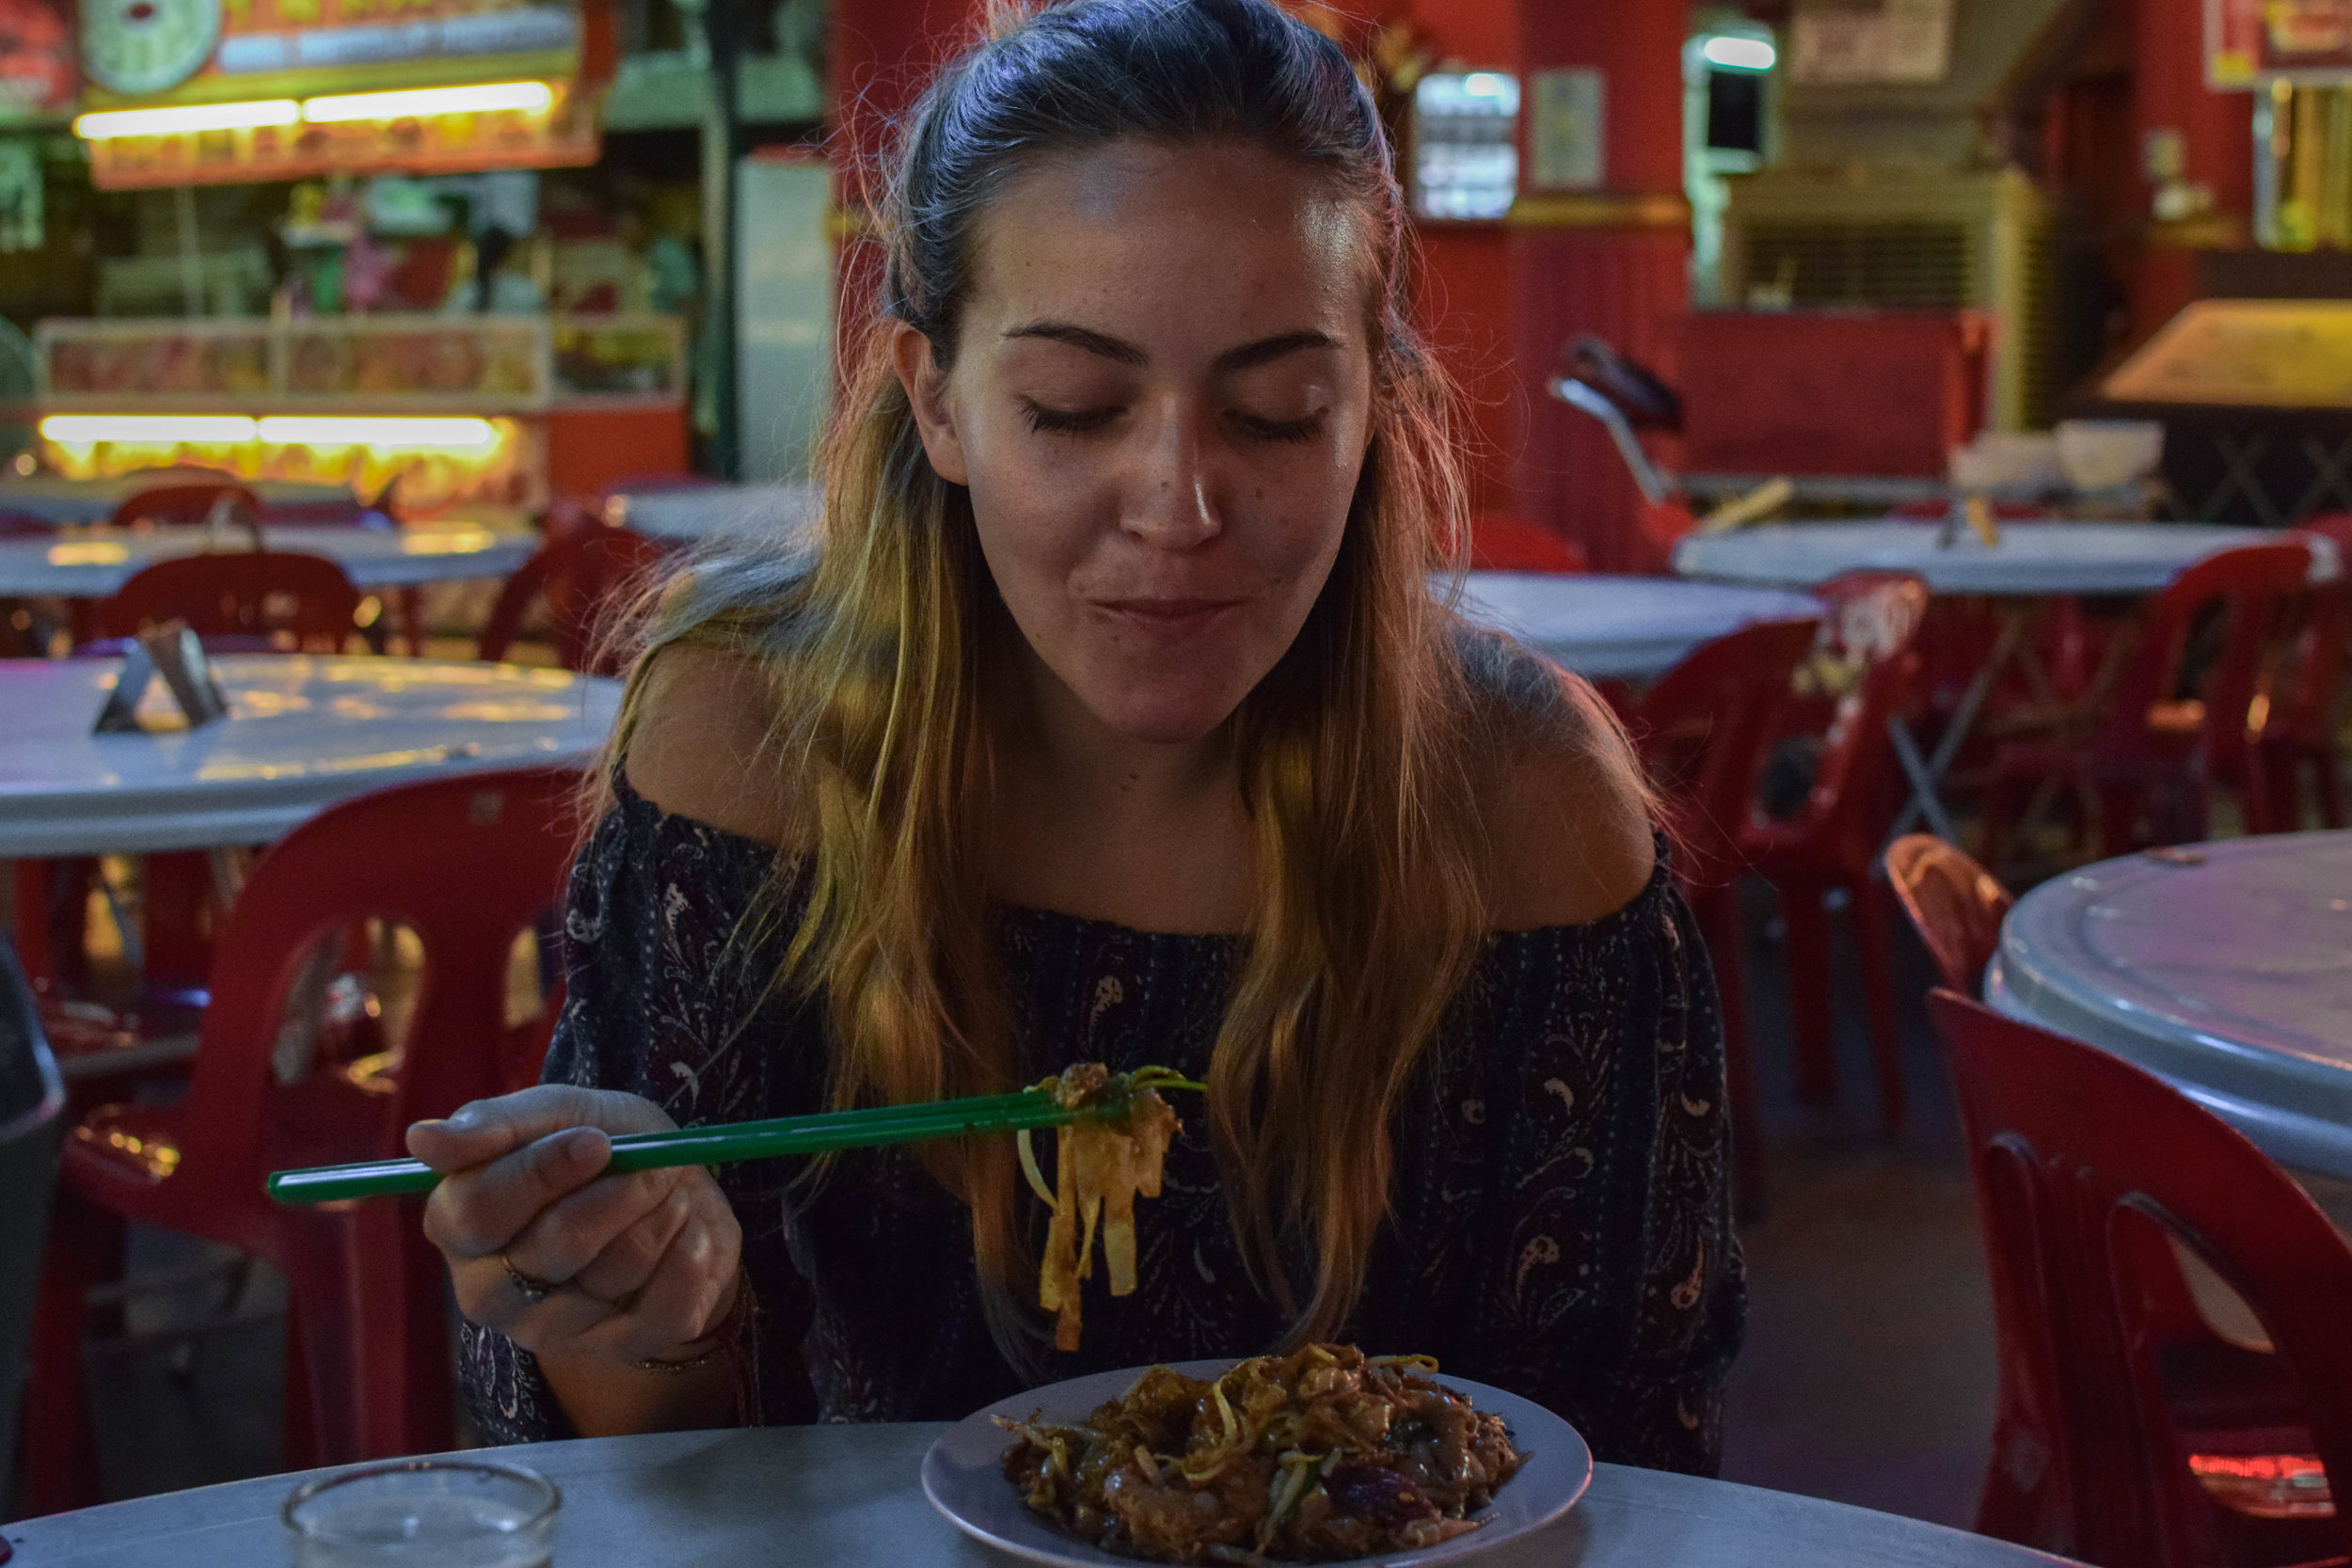 Just tryna eat my char kway teow.